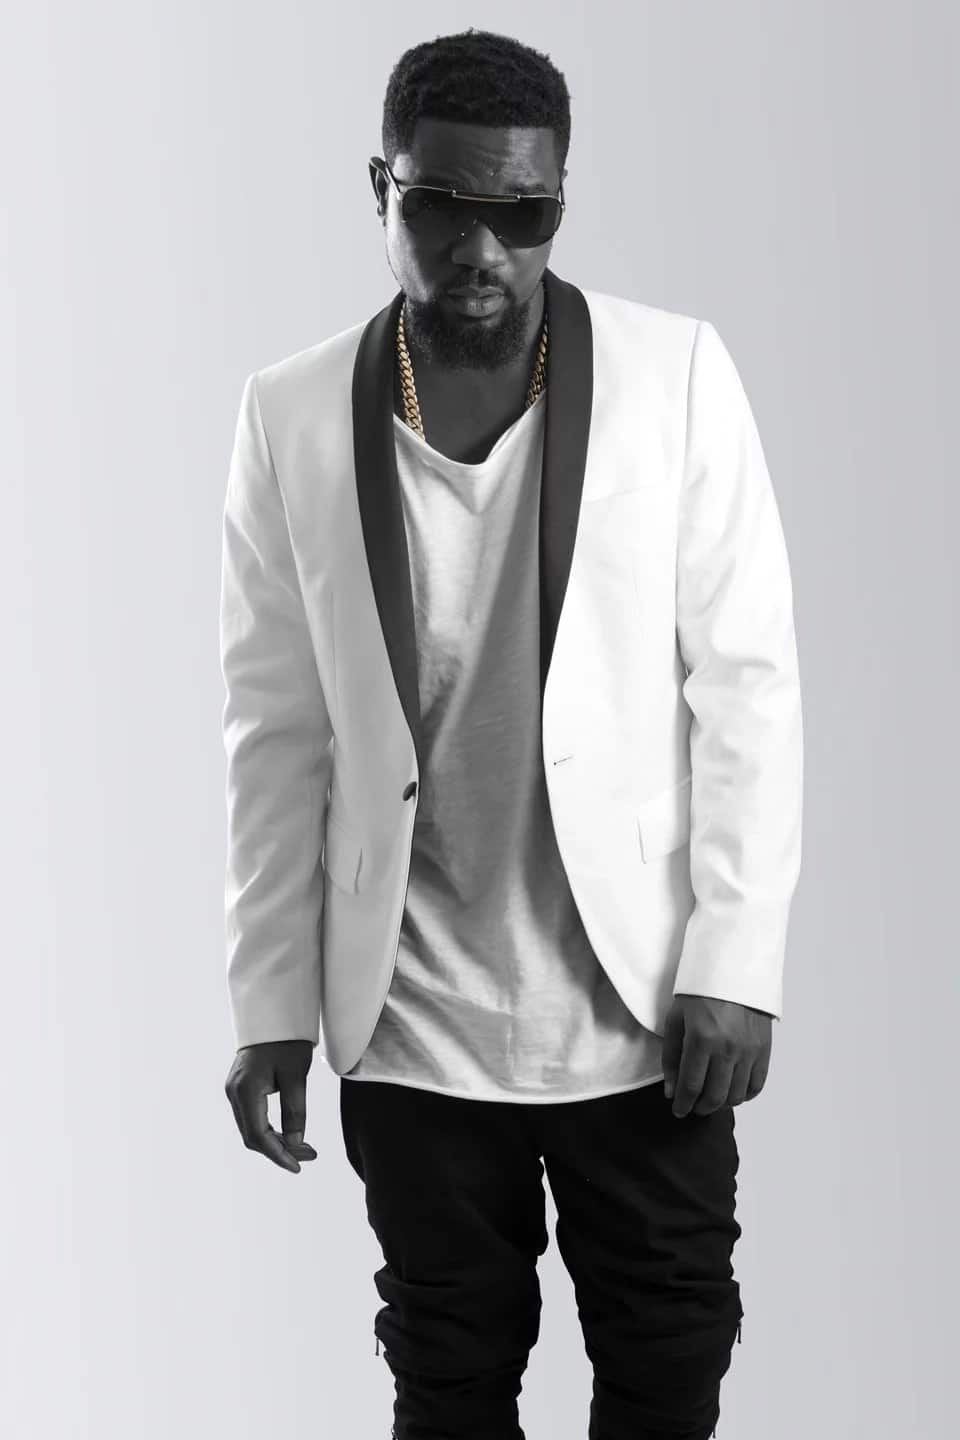 7 swagger photos of Sarkodie that will leave you wanting more